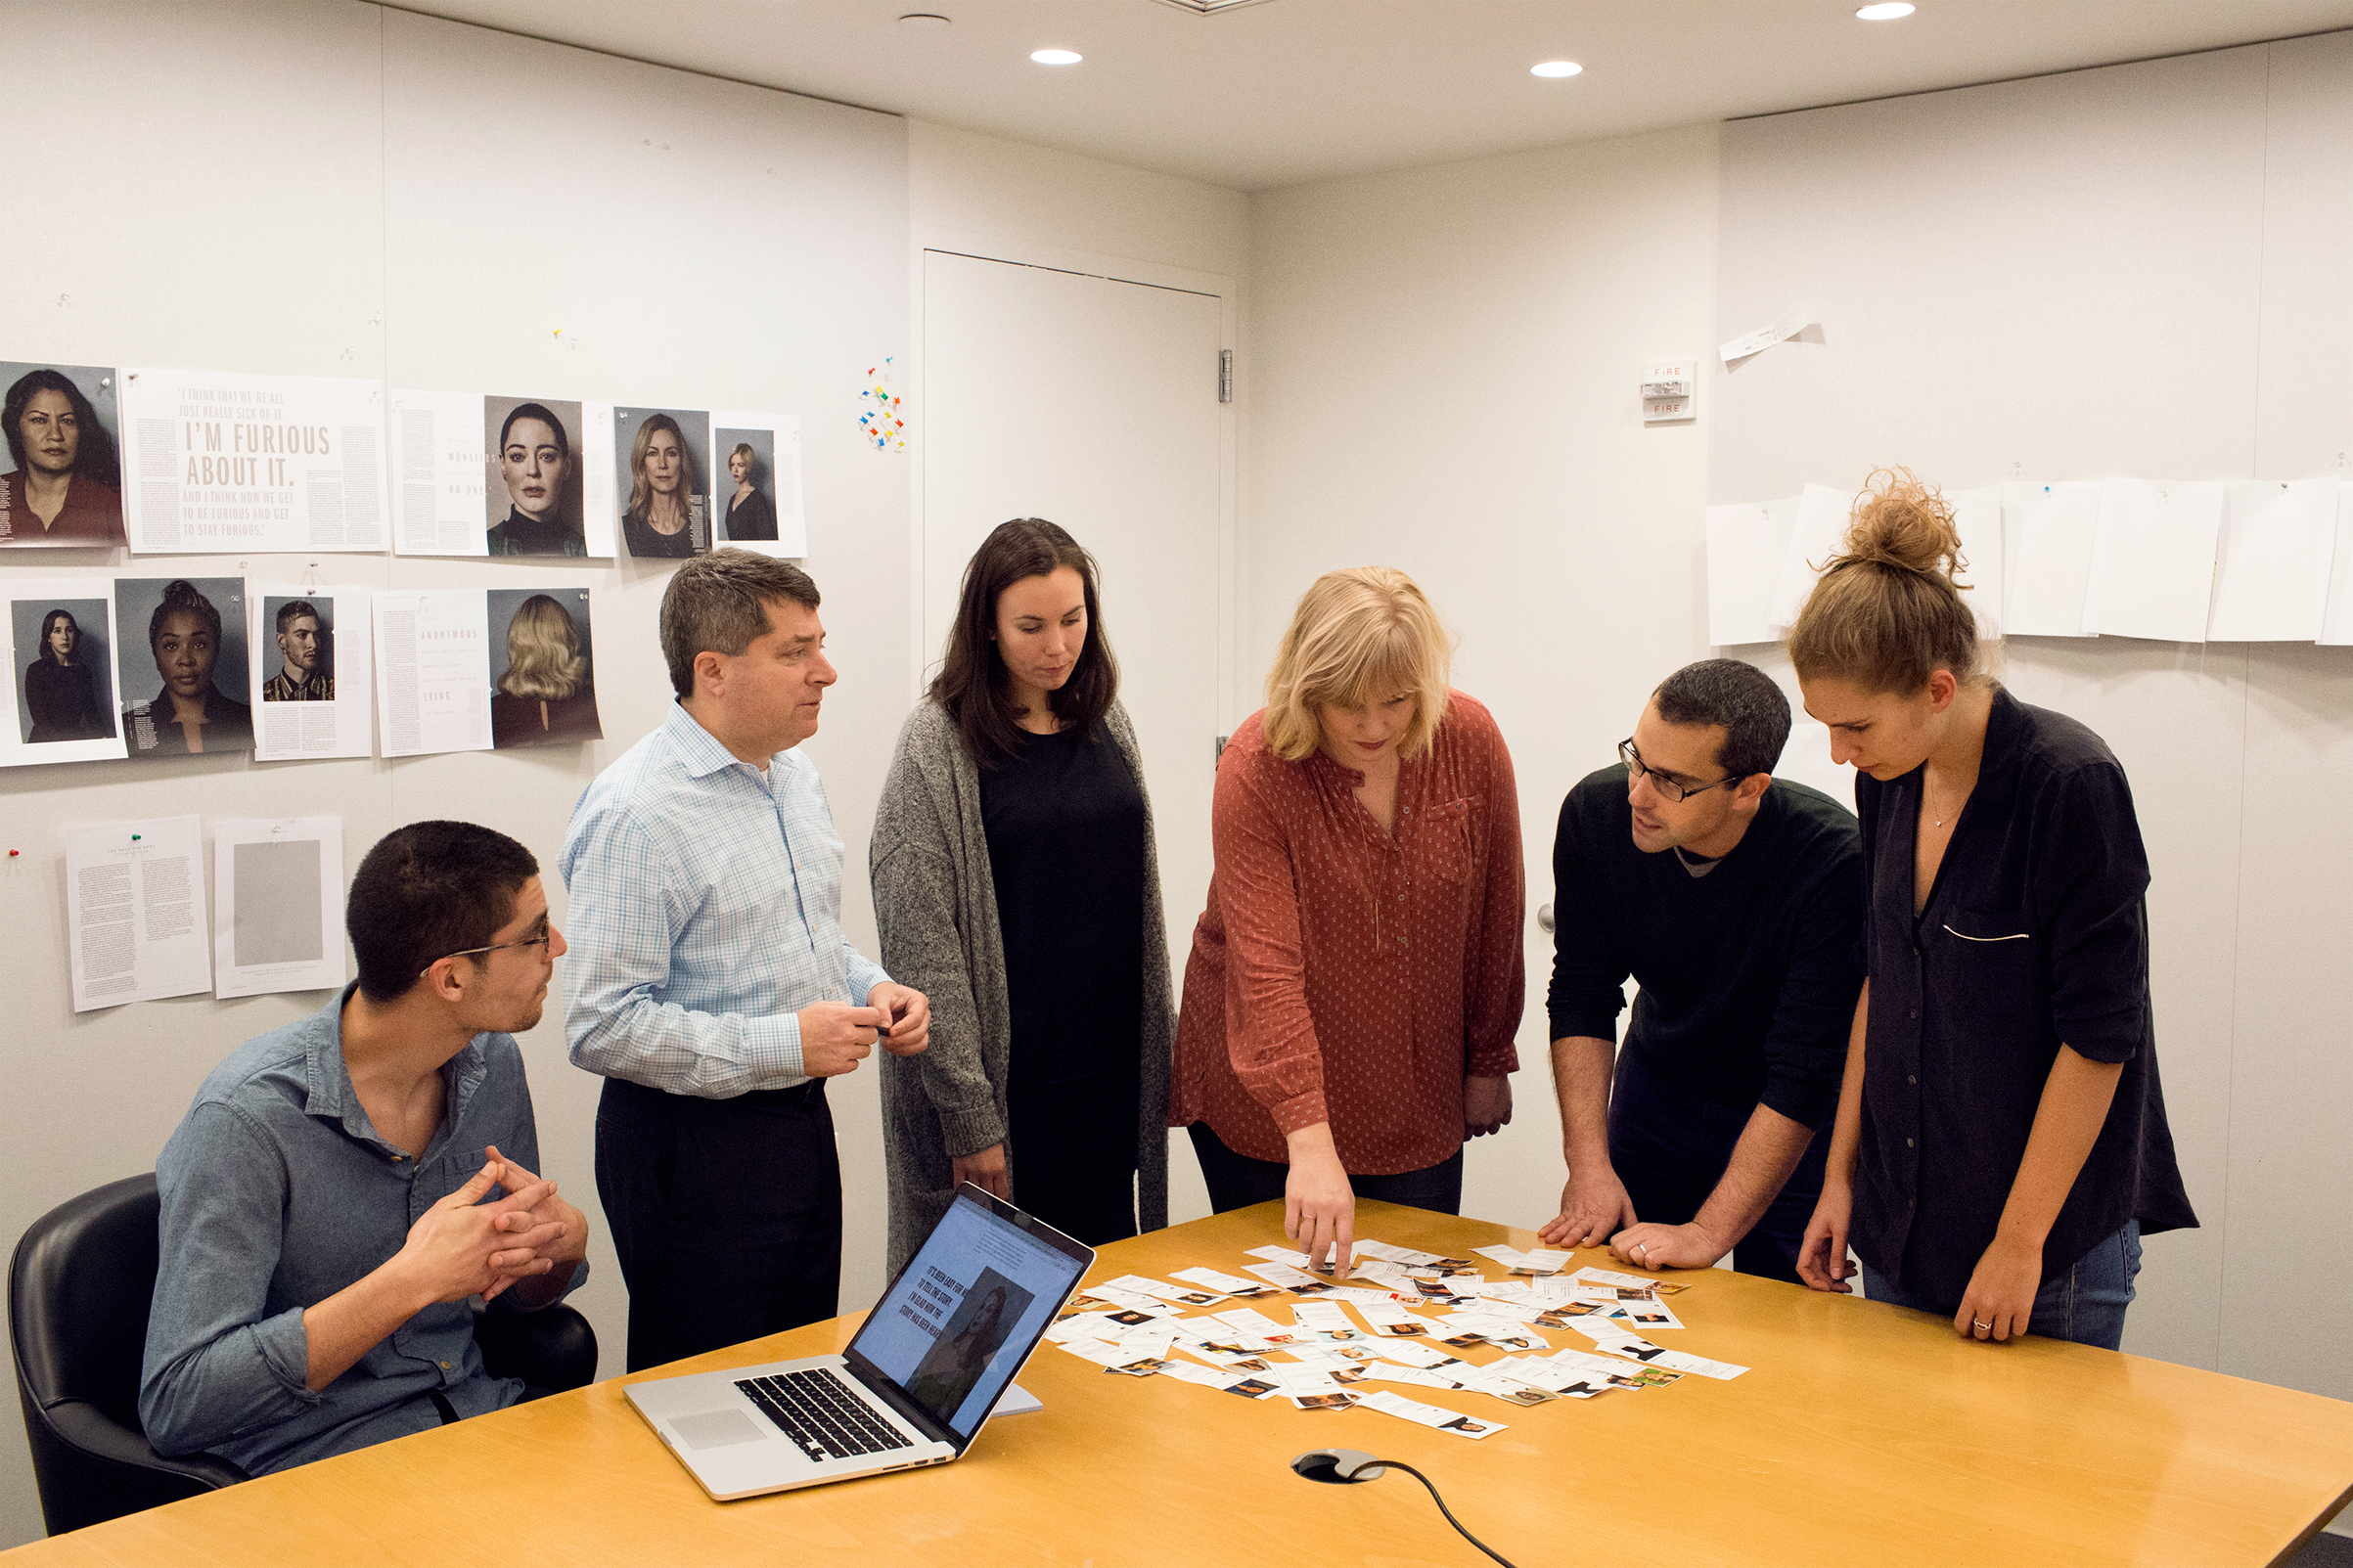 """From left: senior engineer David Kofahl, editor-in-chief Edward Felsenthal, senior producer Tara Johnson, associate art director Chelsea Kardokus, assistant managing editor Ben Goldberger and writer Eliana Dockterman outlining the package in their second home, a secret conference room called """"the bunker."""""""